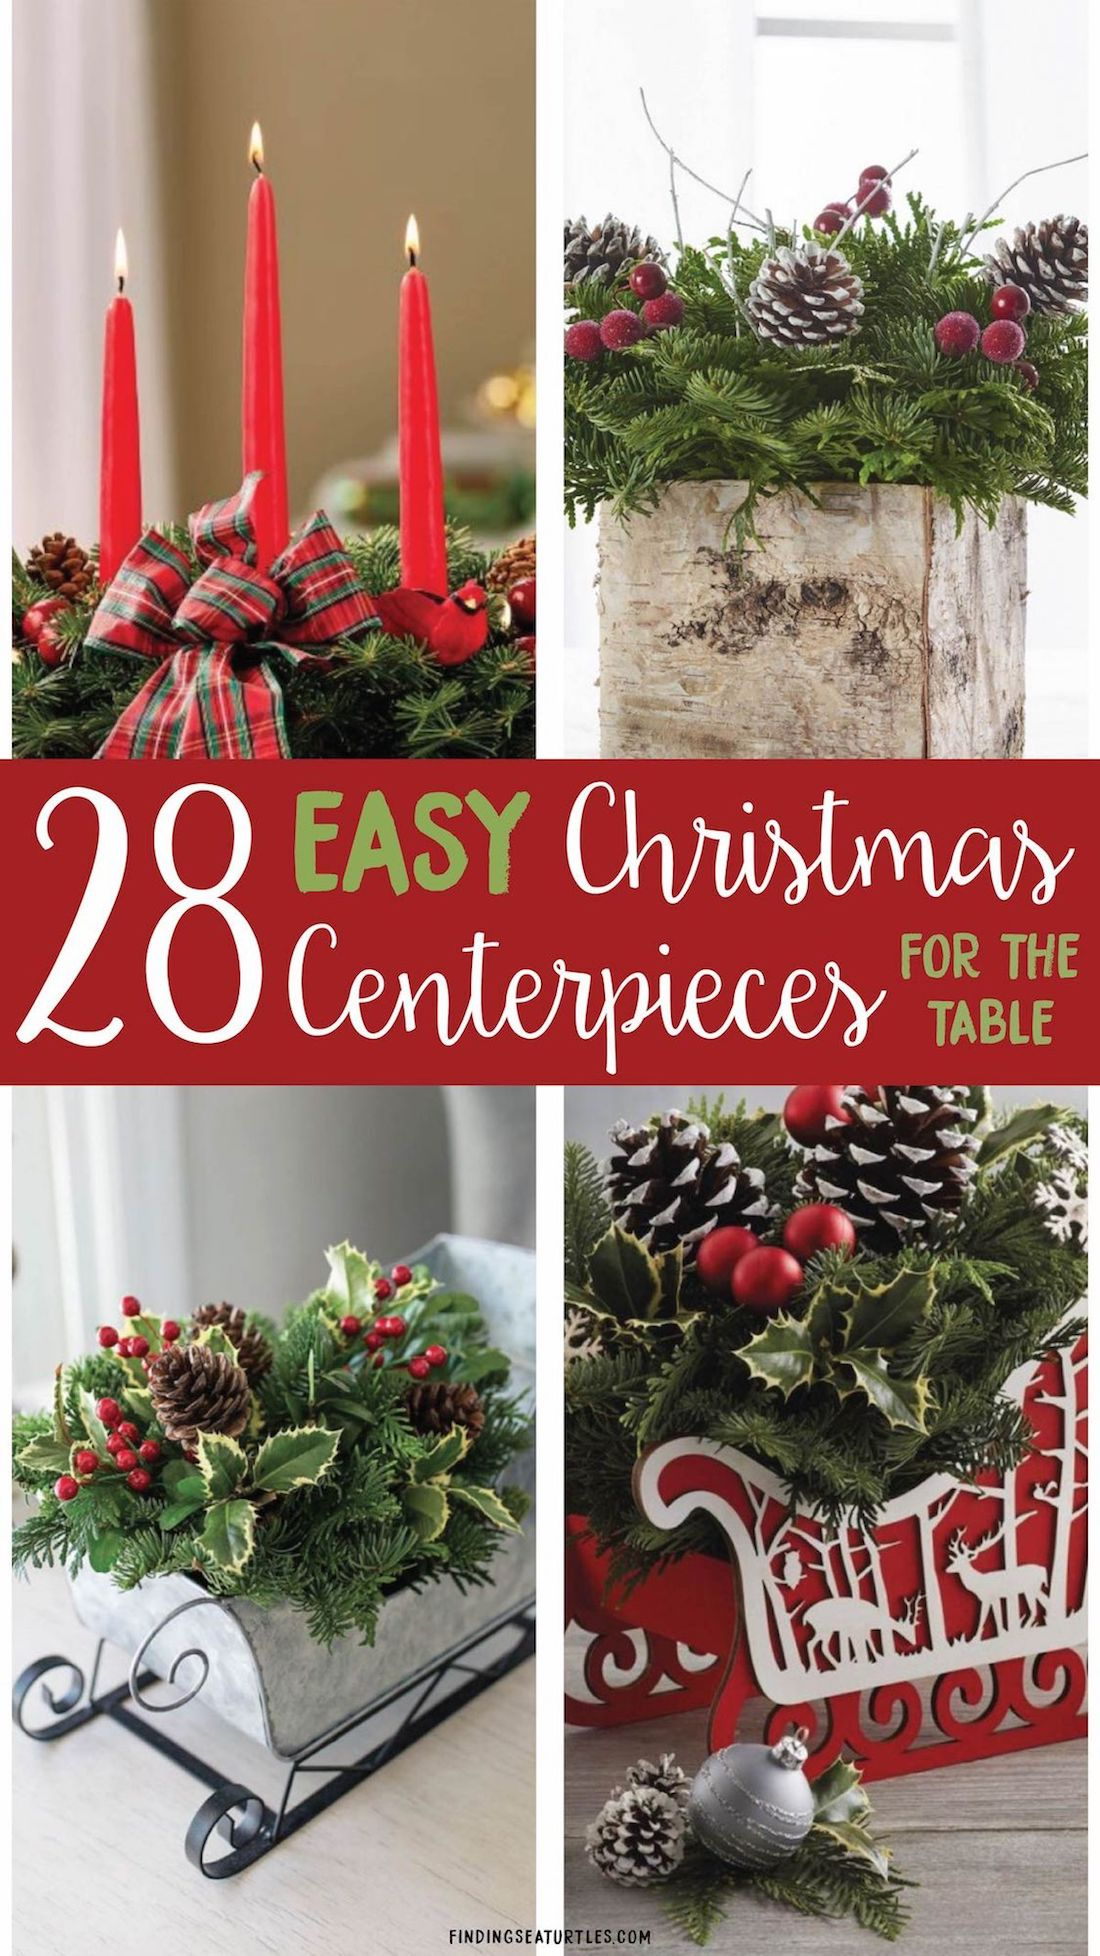 28 EASY Christmas Centerpieces For The Table! #ChristmasCenterpiece #Christmas #ChristmasDecor